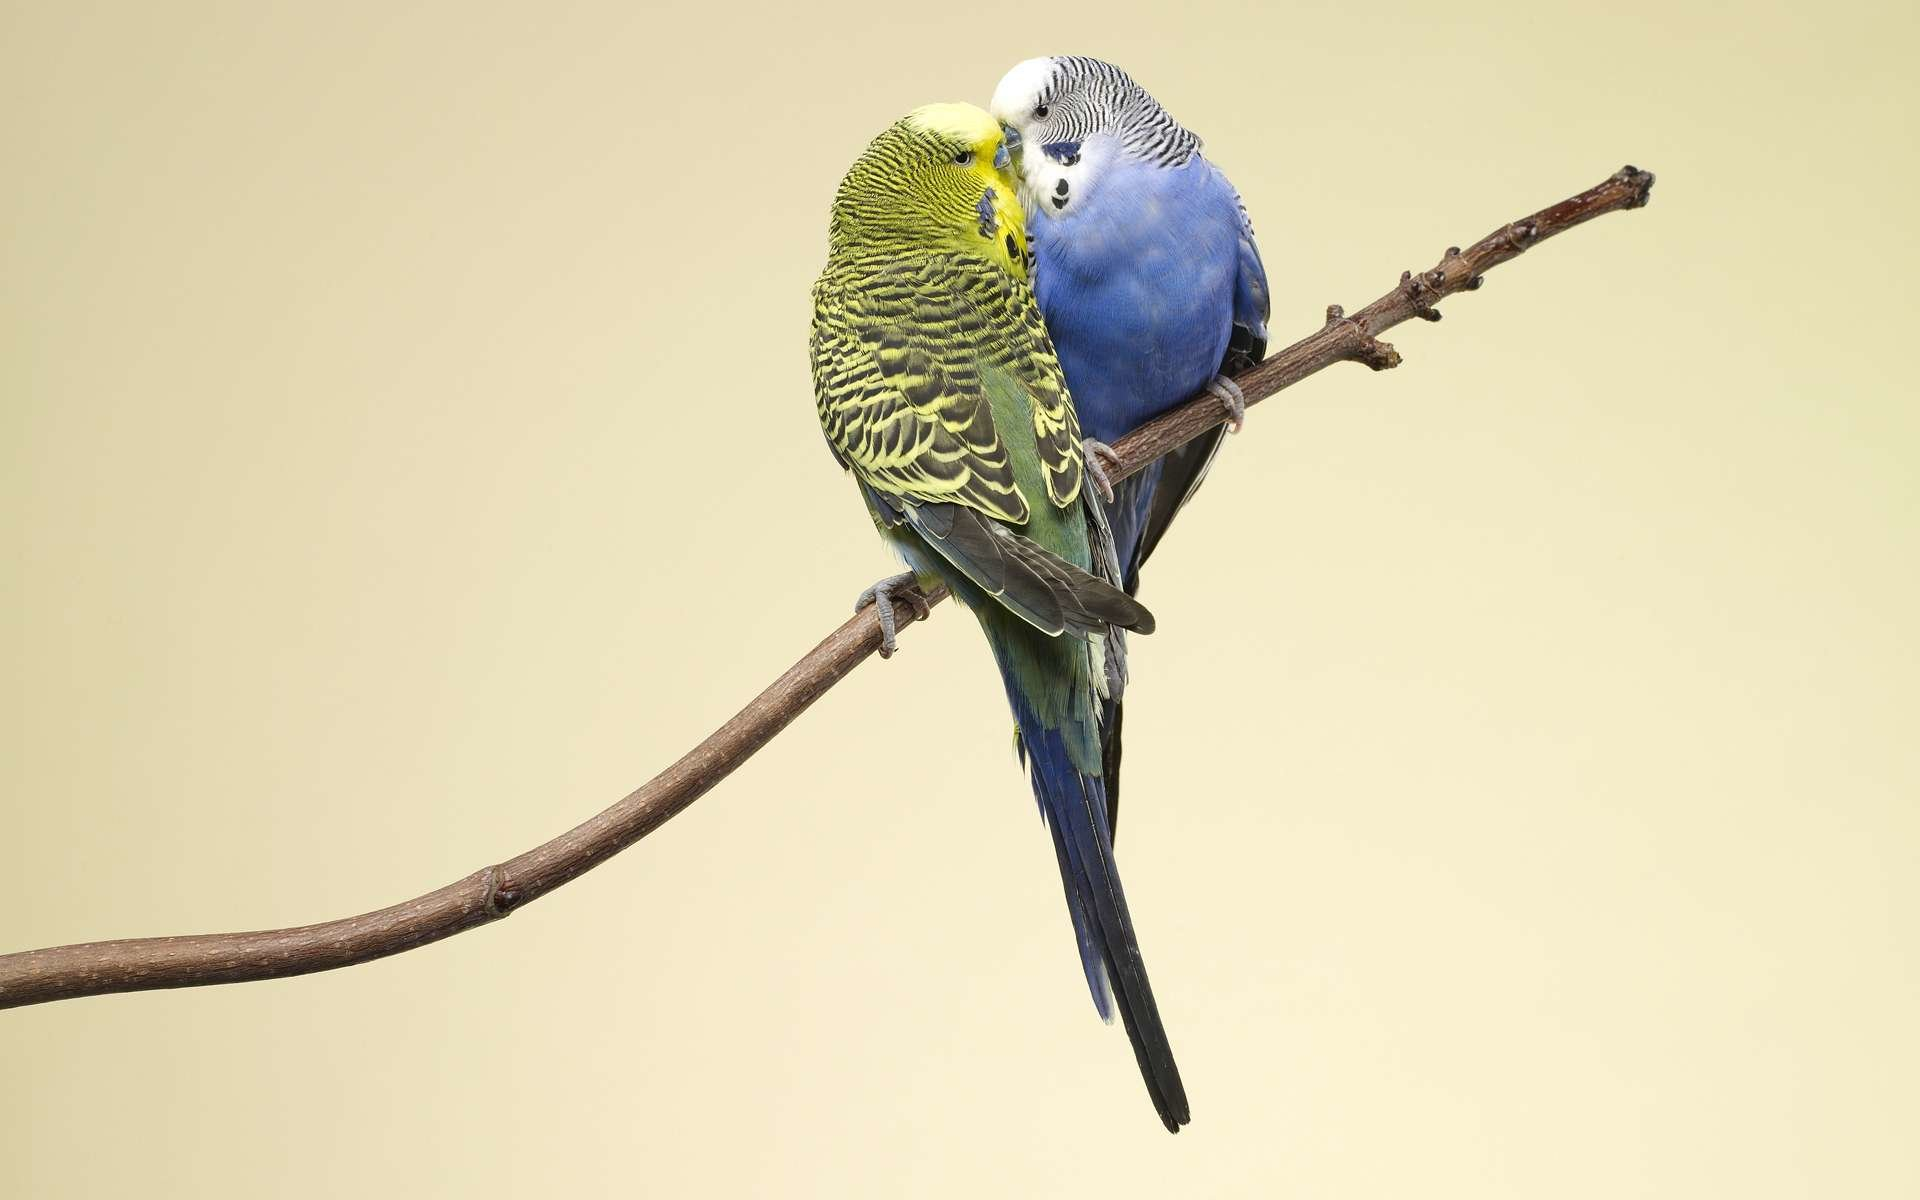 Download hd 1920x1200 Budgerigar PC background ID:32563 for free